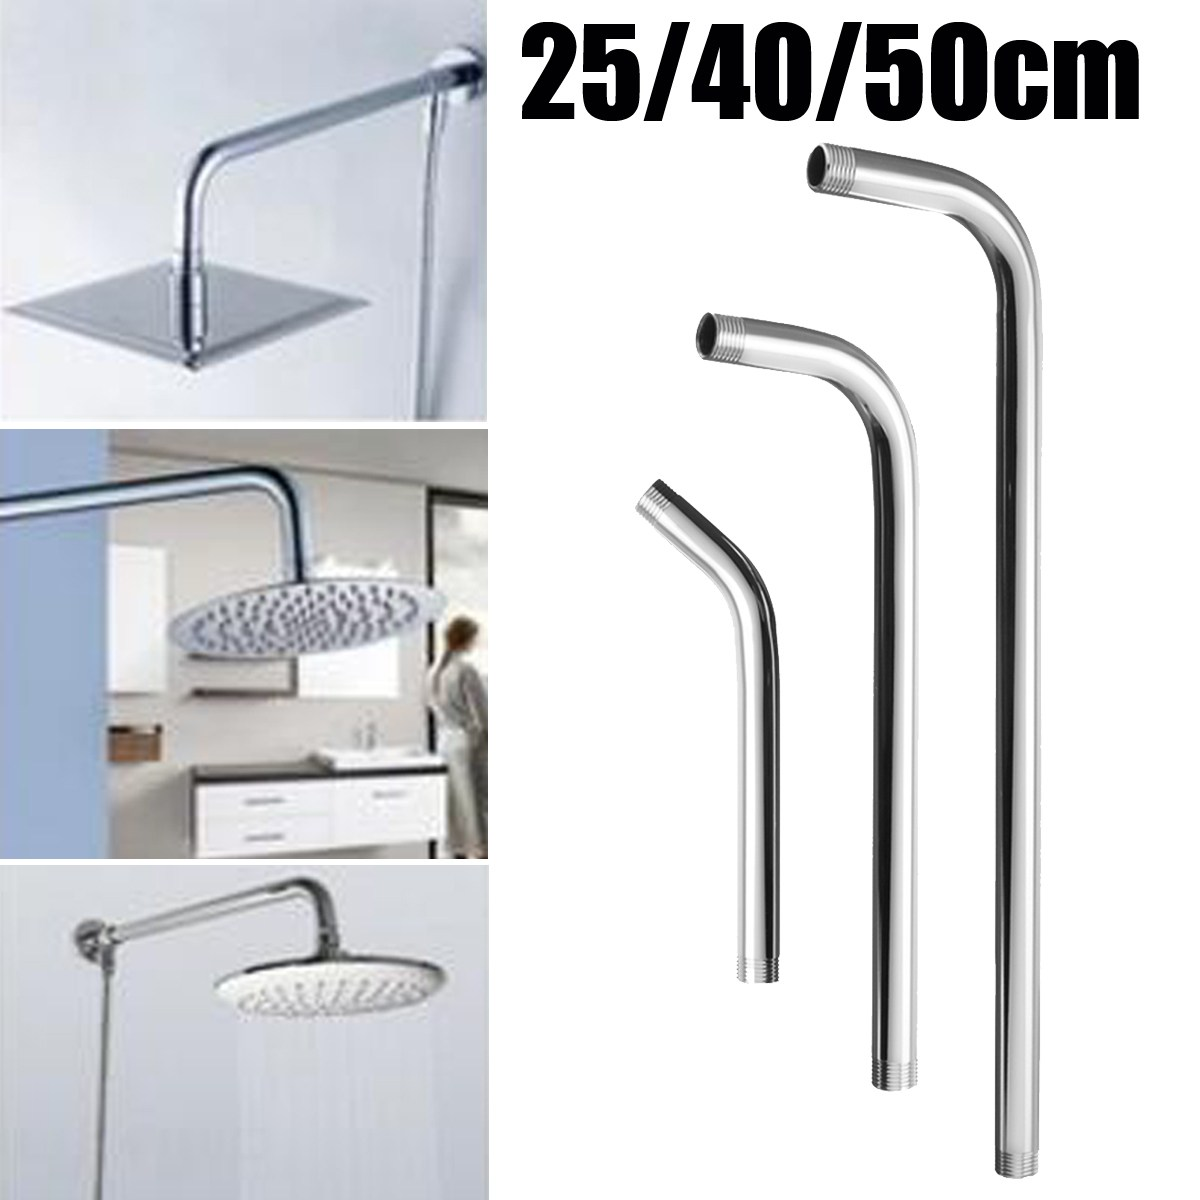 New 25cm/40cm/50cm Wall Mounted Shower Extension Arm Angled Extra Pipe For Rain Shower Head Bathroom Tools Accessories